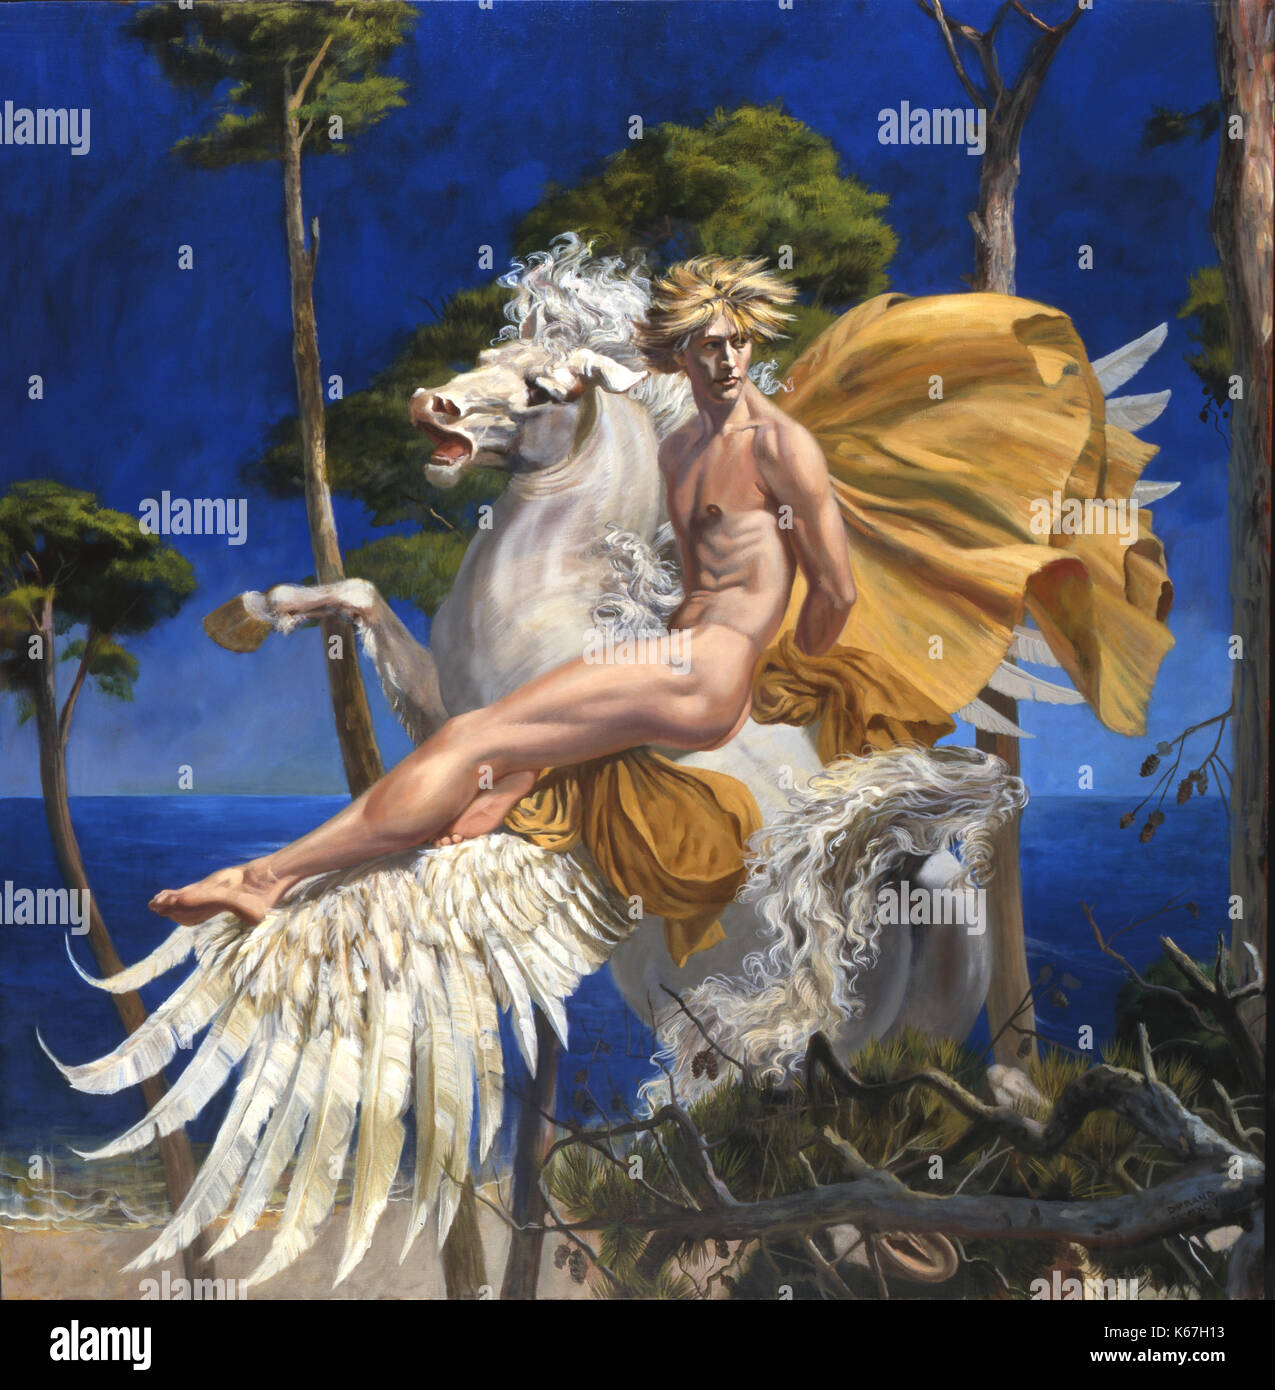 Pegasus-The white, winged divine stallion of Greek mythology is about to alight in a grove of pine trees at the edge of the sea. Pegasus' rider is a beautiful, blond youth, a mysterious Greek hero  Bellerophon or Perseus. The large painting is a posthumous portrait of the Royal Ballet dancer, Julian Hosking. - Stock Image